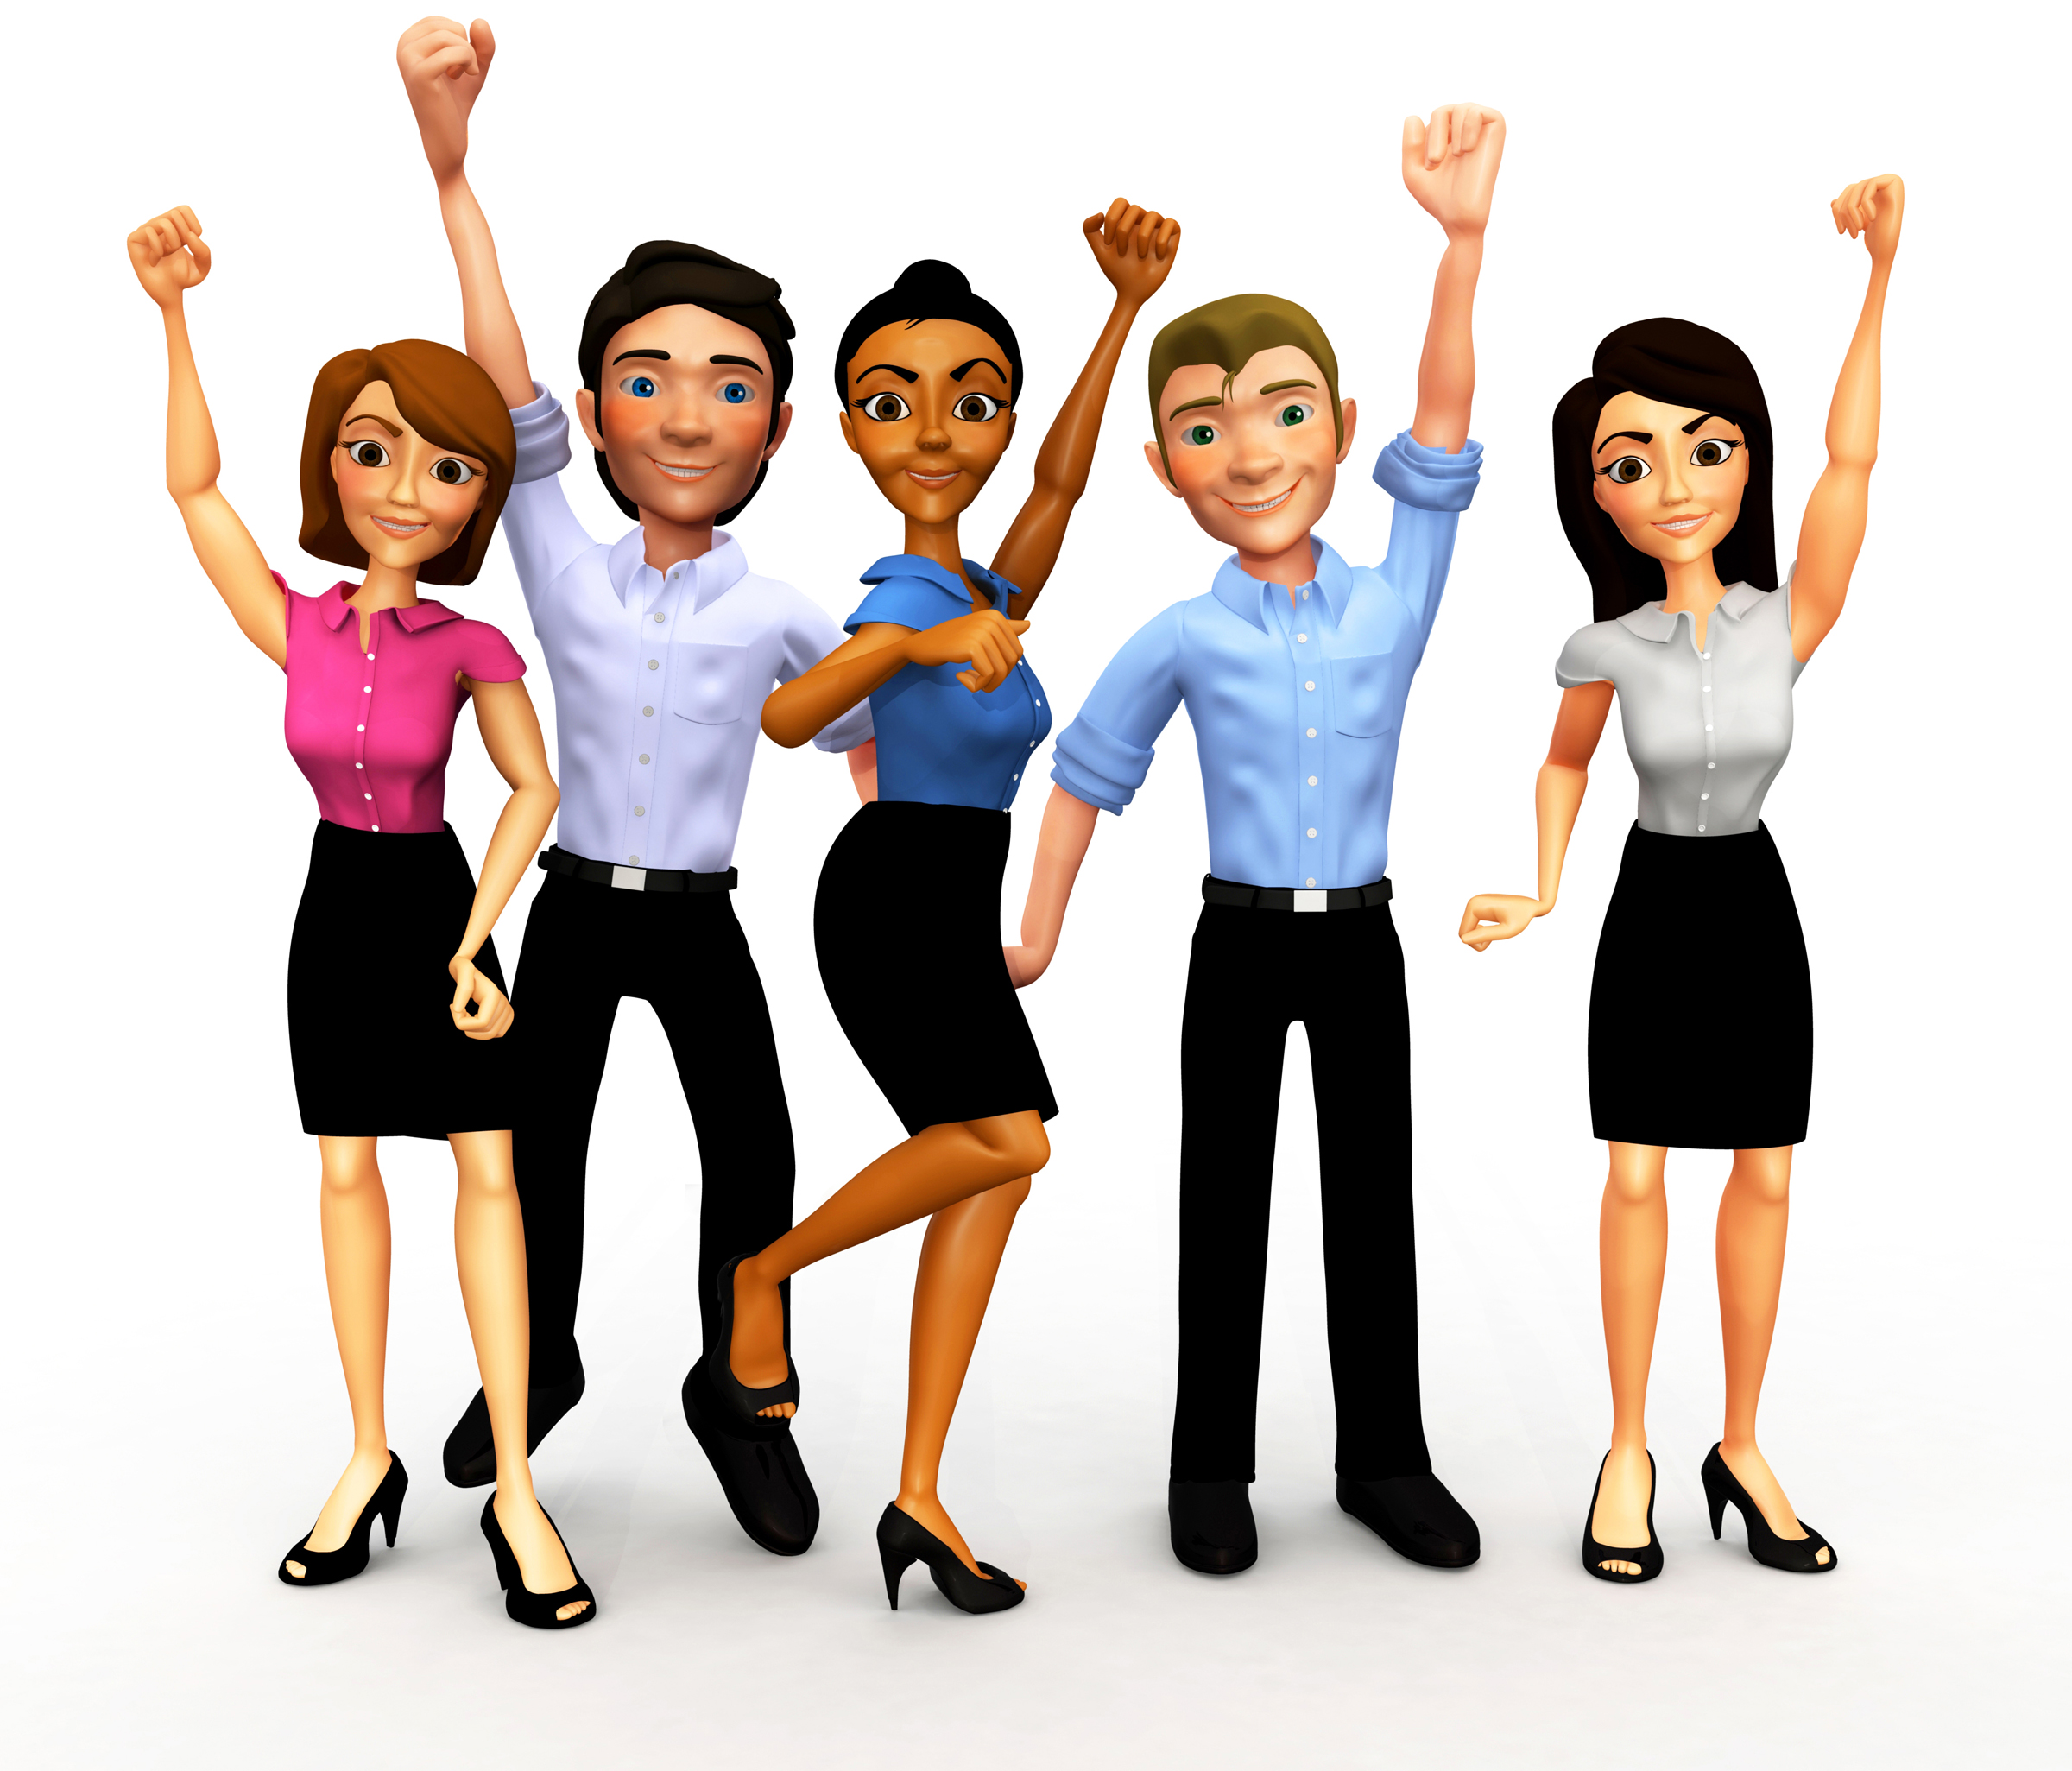 Free Employees Cliparts, Download Free Clip Art, Free Clip.